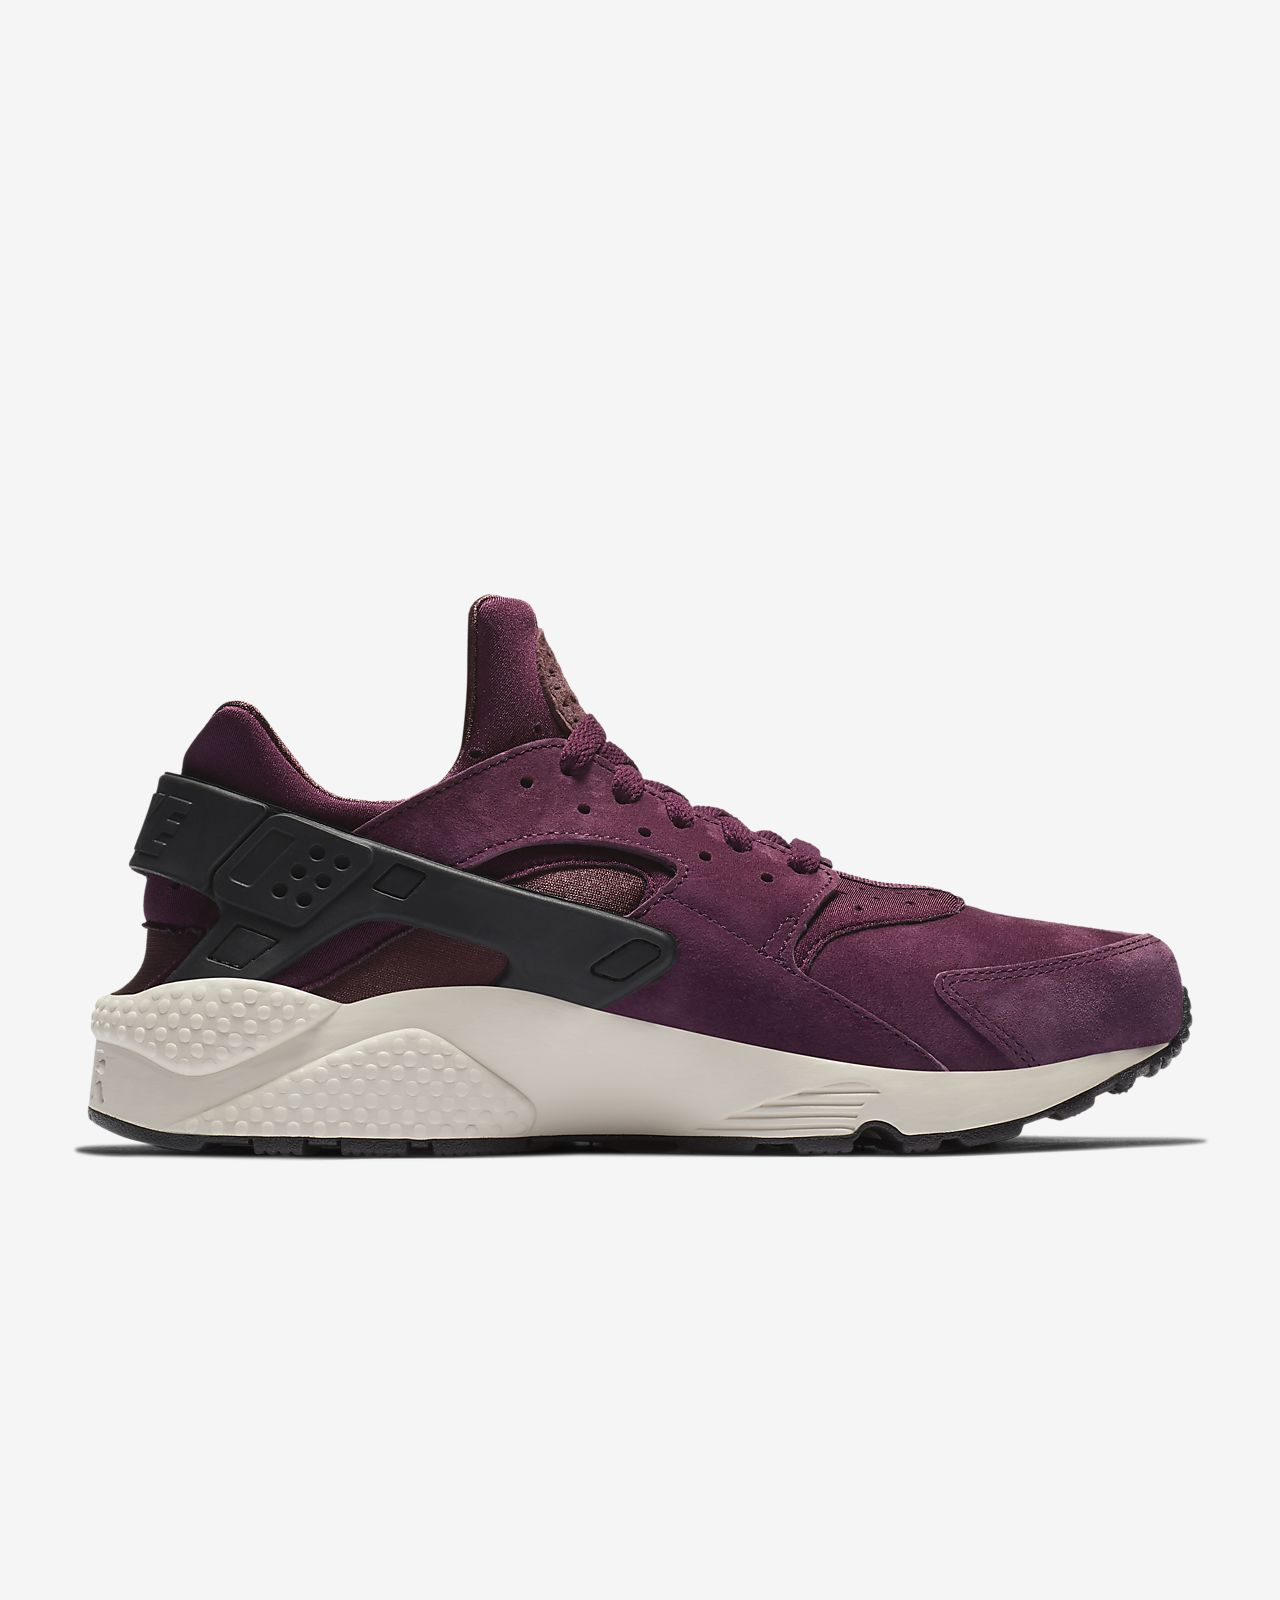 in stock d4058 30e90 ... Nike Air Huarache Premium Men s Shoe